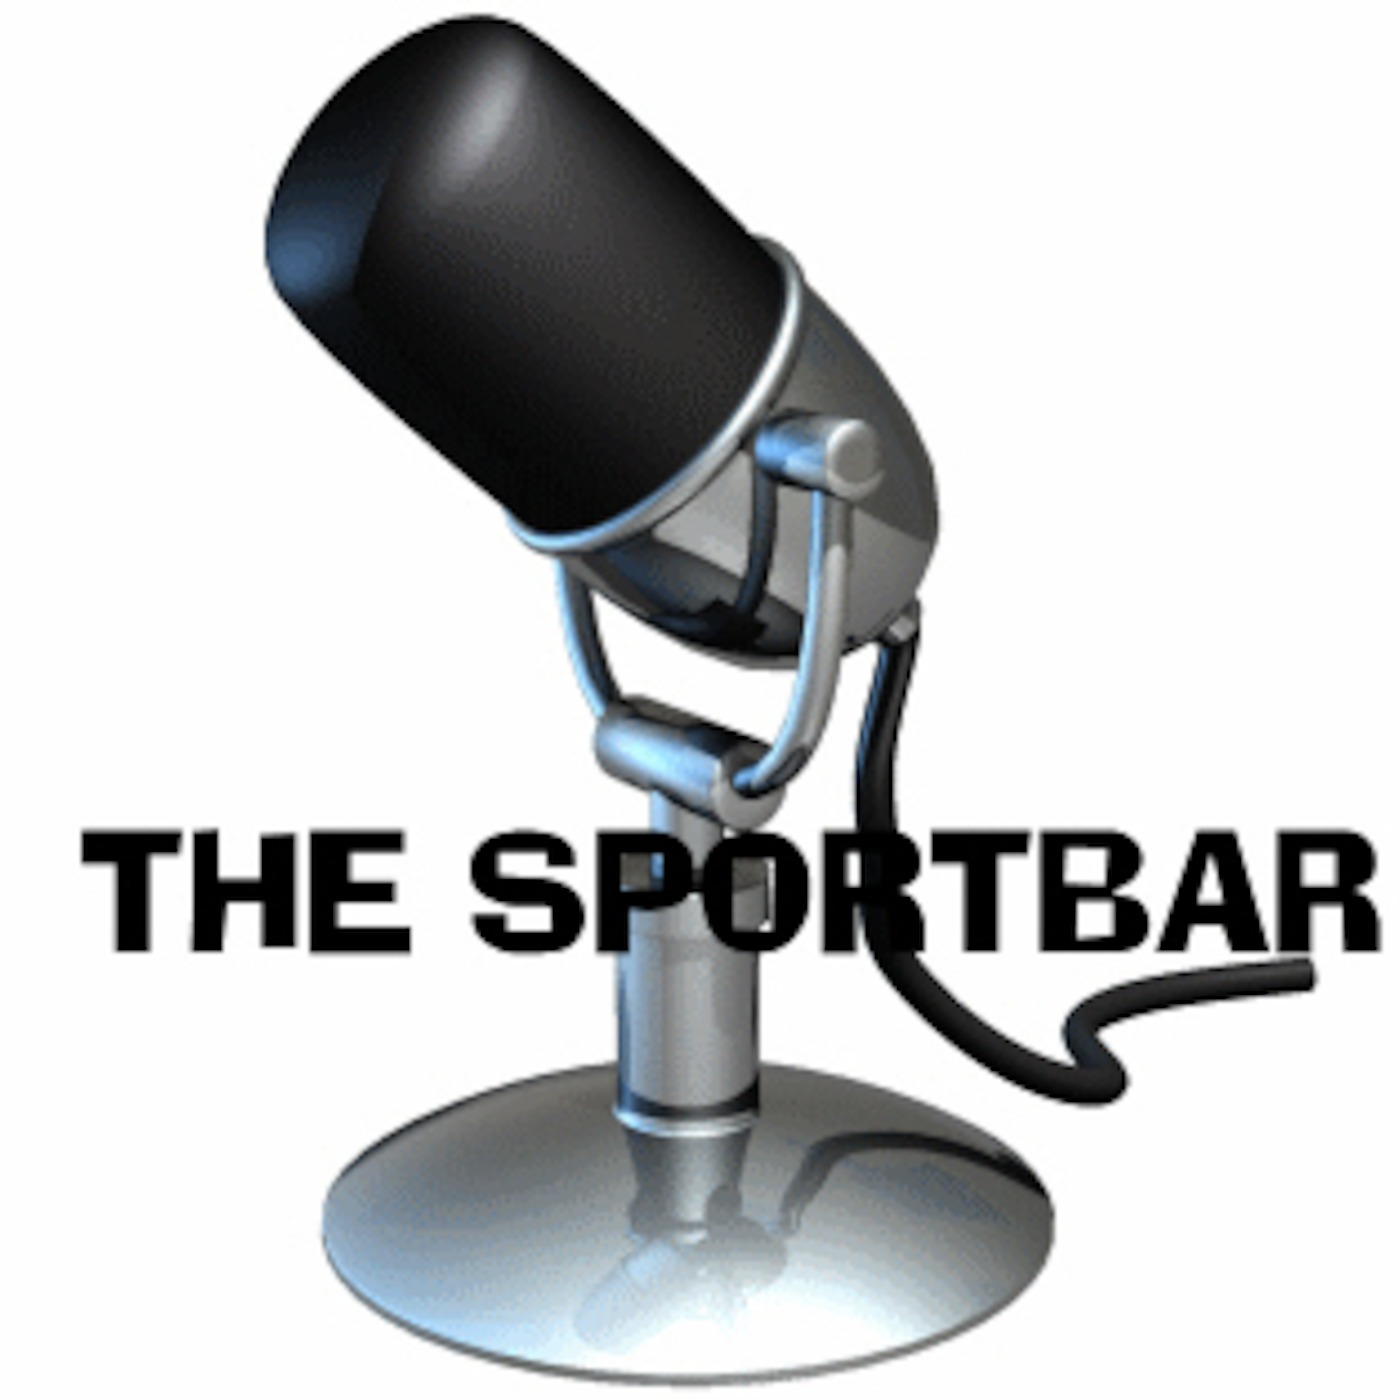 THE SPORTS BAR (Staceysports.com)